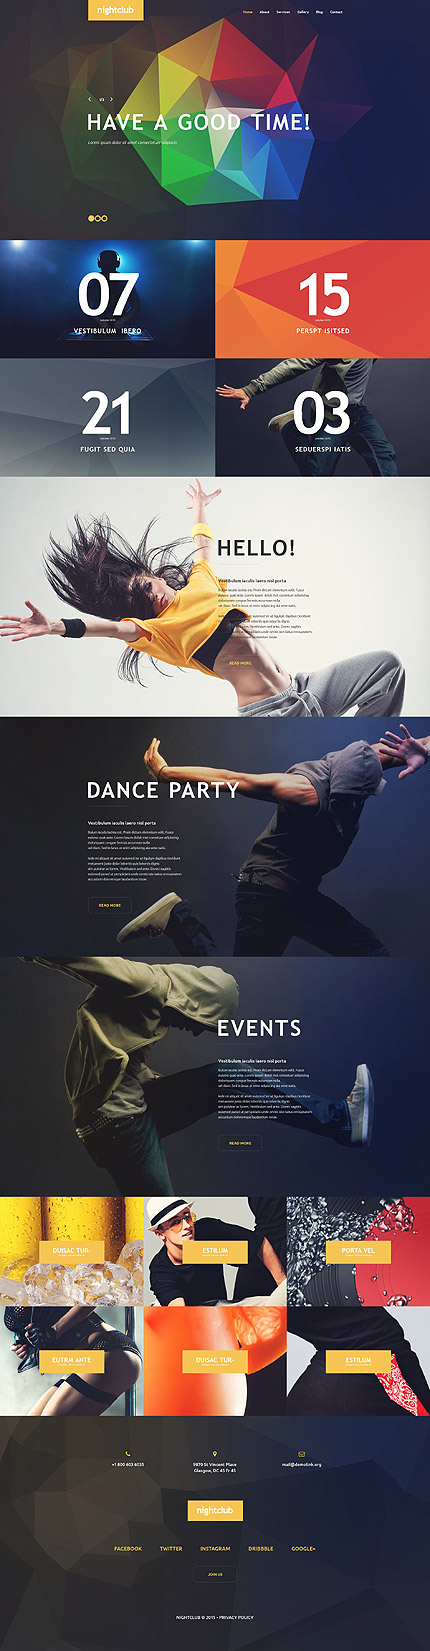 Template 54583 –Night Club Responsive WordPress Theme with Slider, Parallax, Blog and Gallery